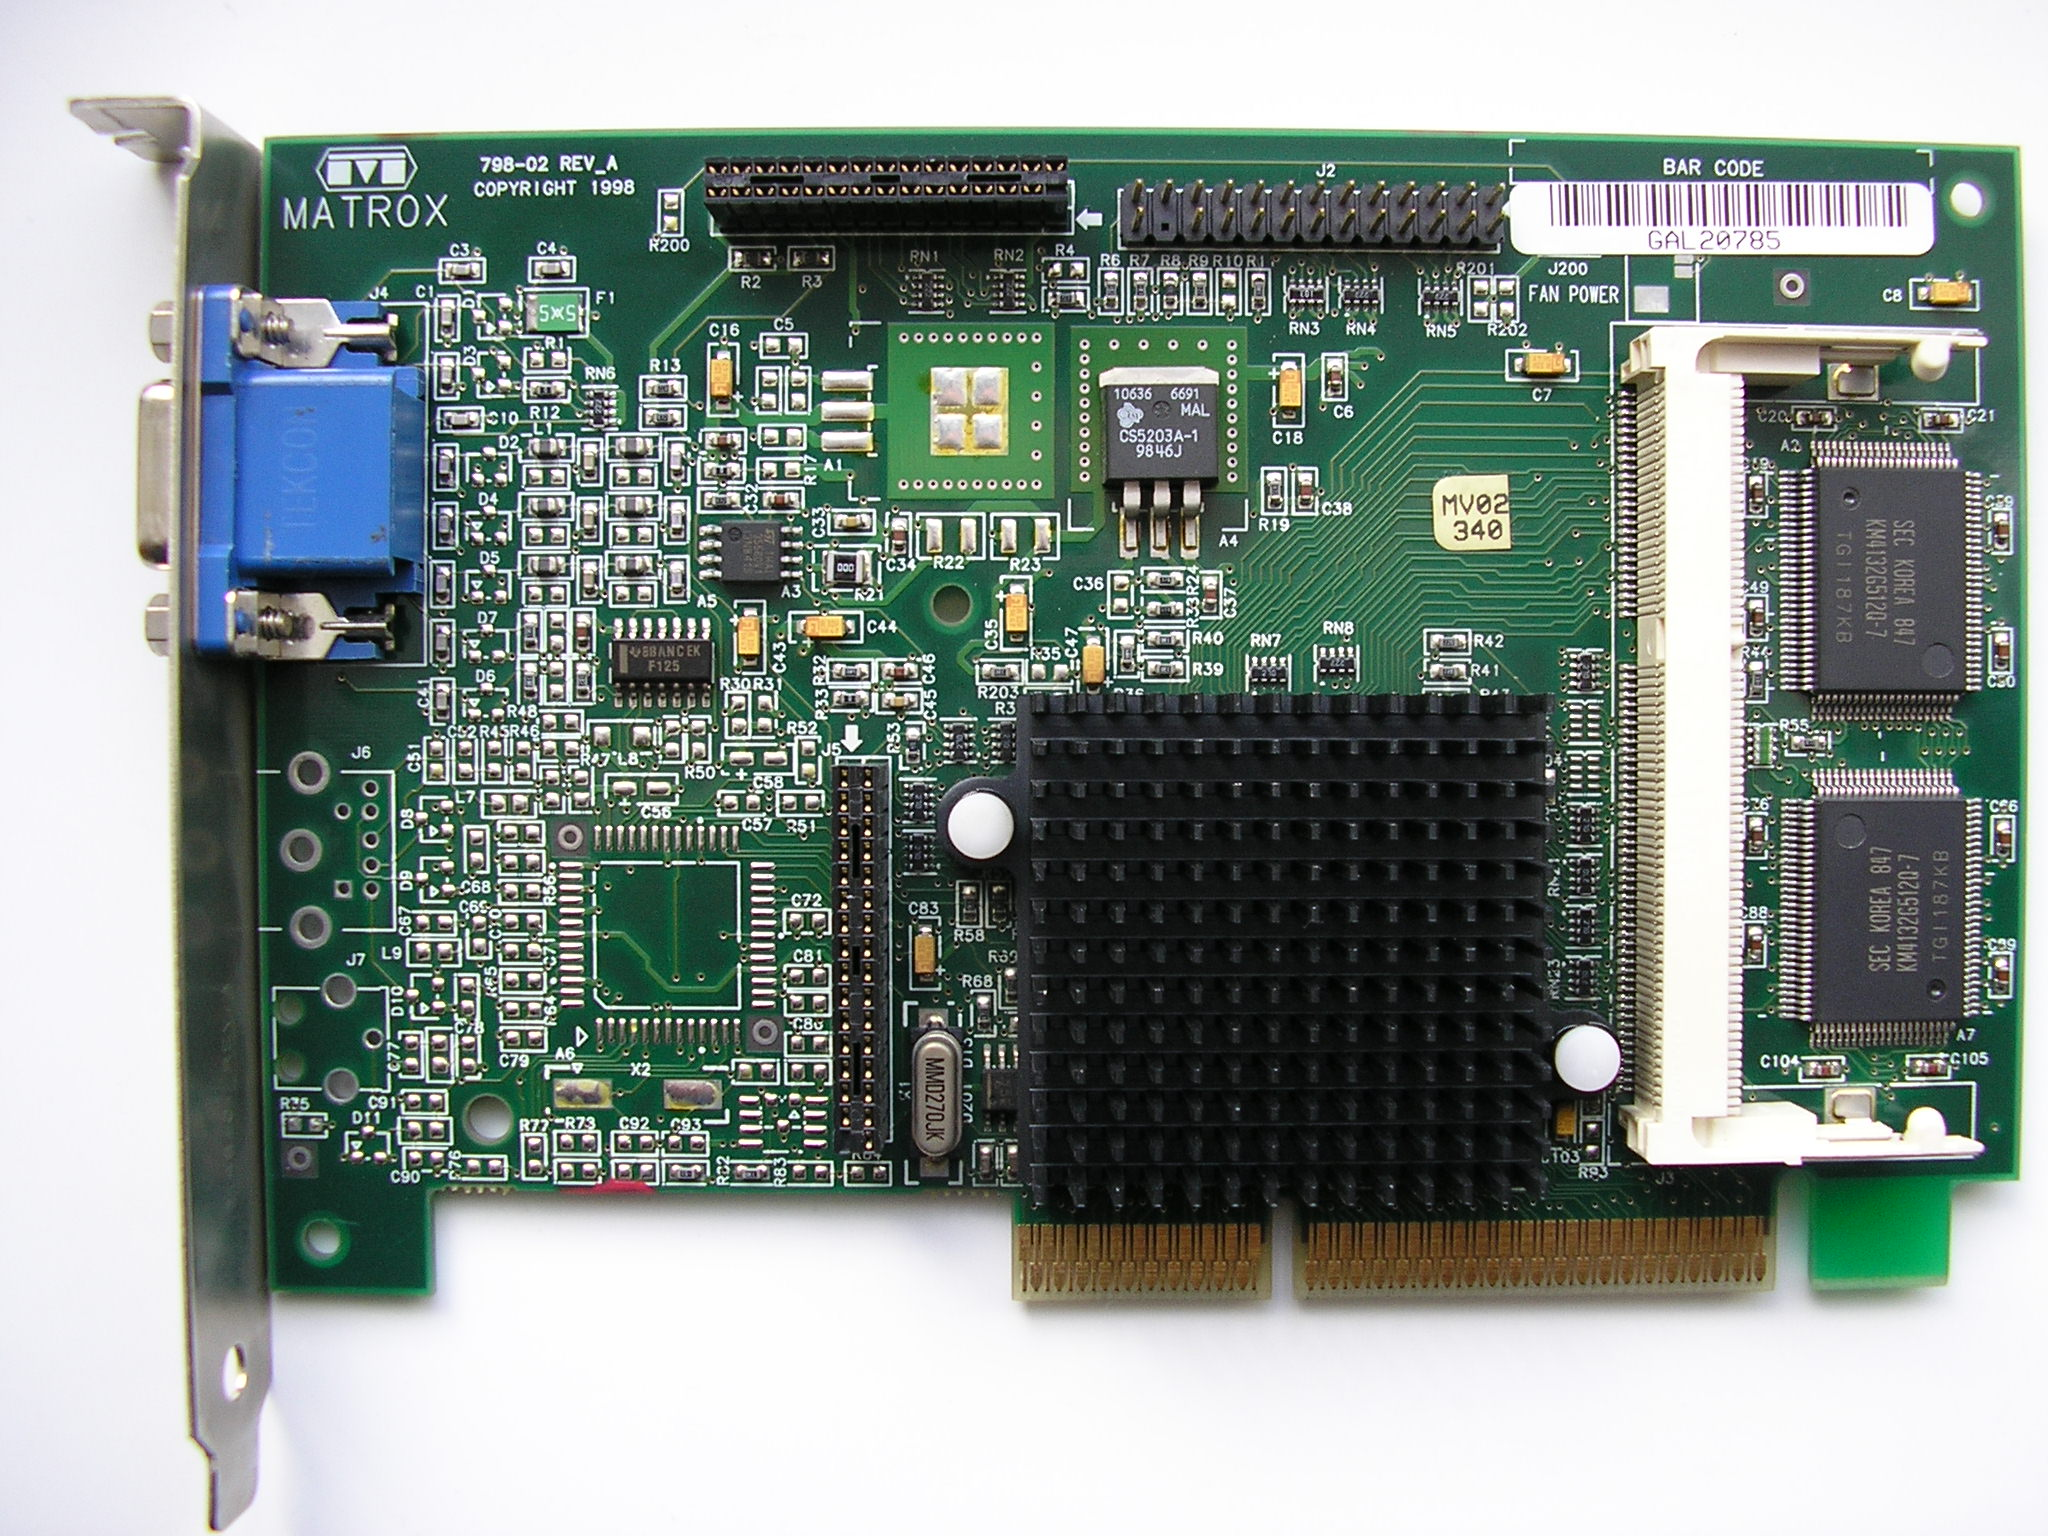 MATROX GRAPHICS MILLENNIUM G200 AGP 8MB DRIVER FOR WINDOWS DOWNLOAD